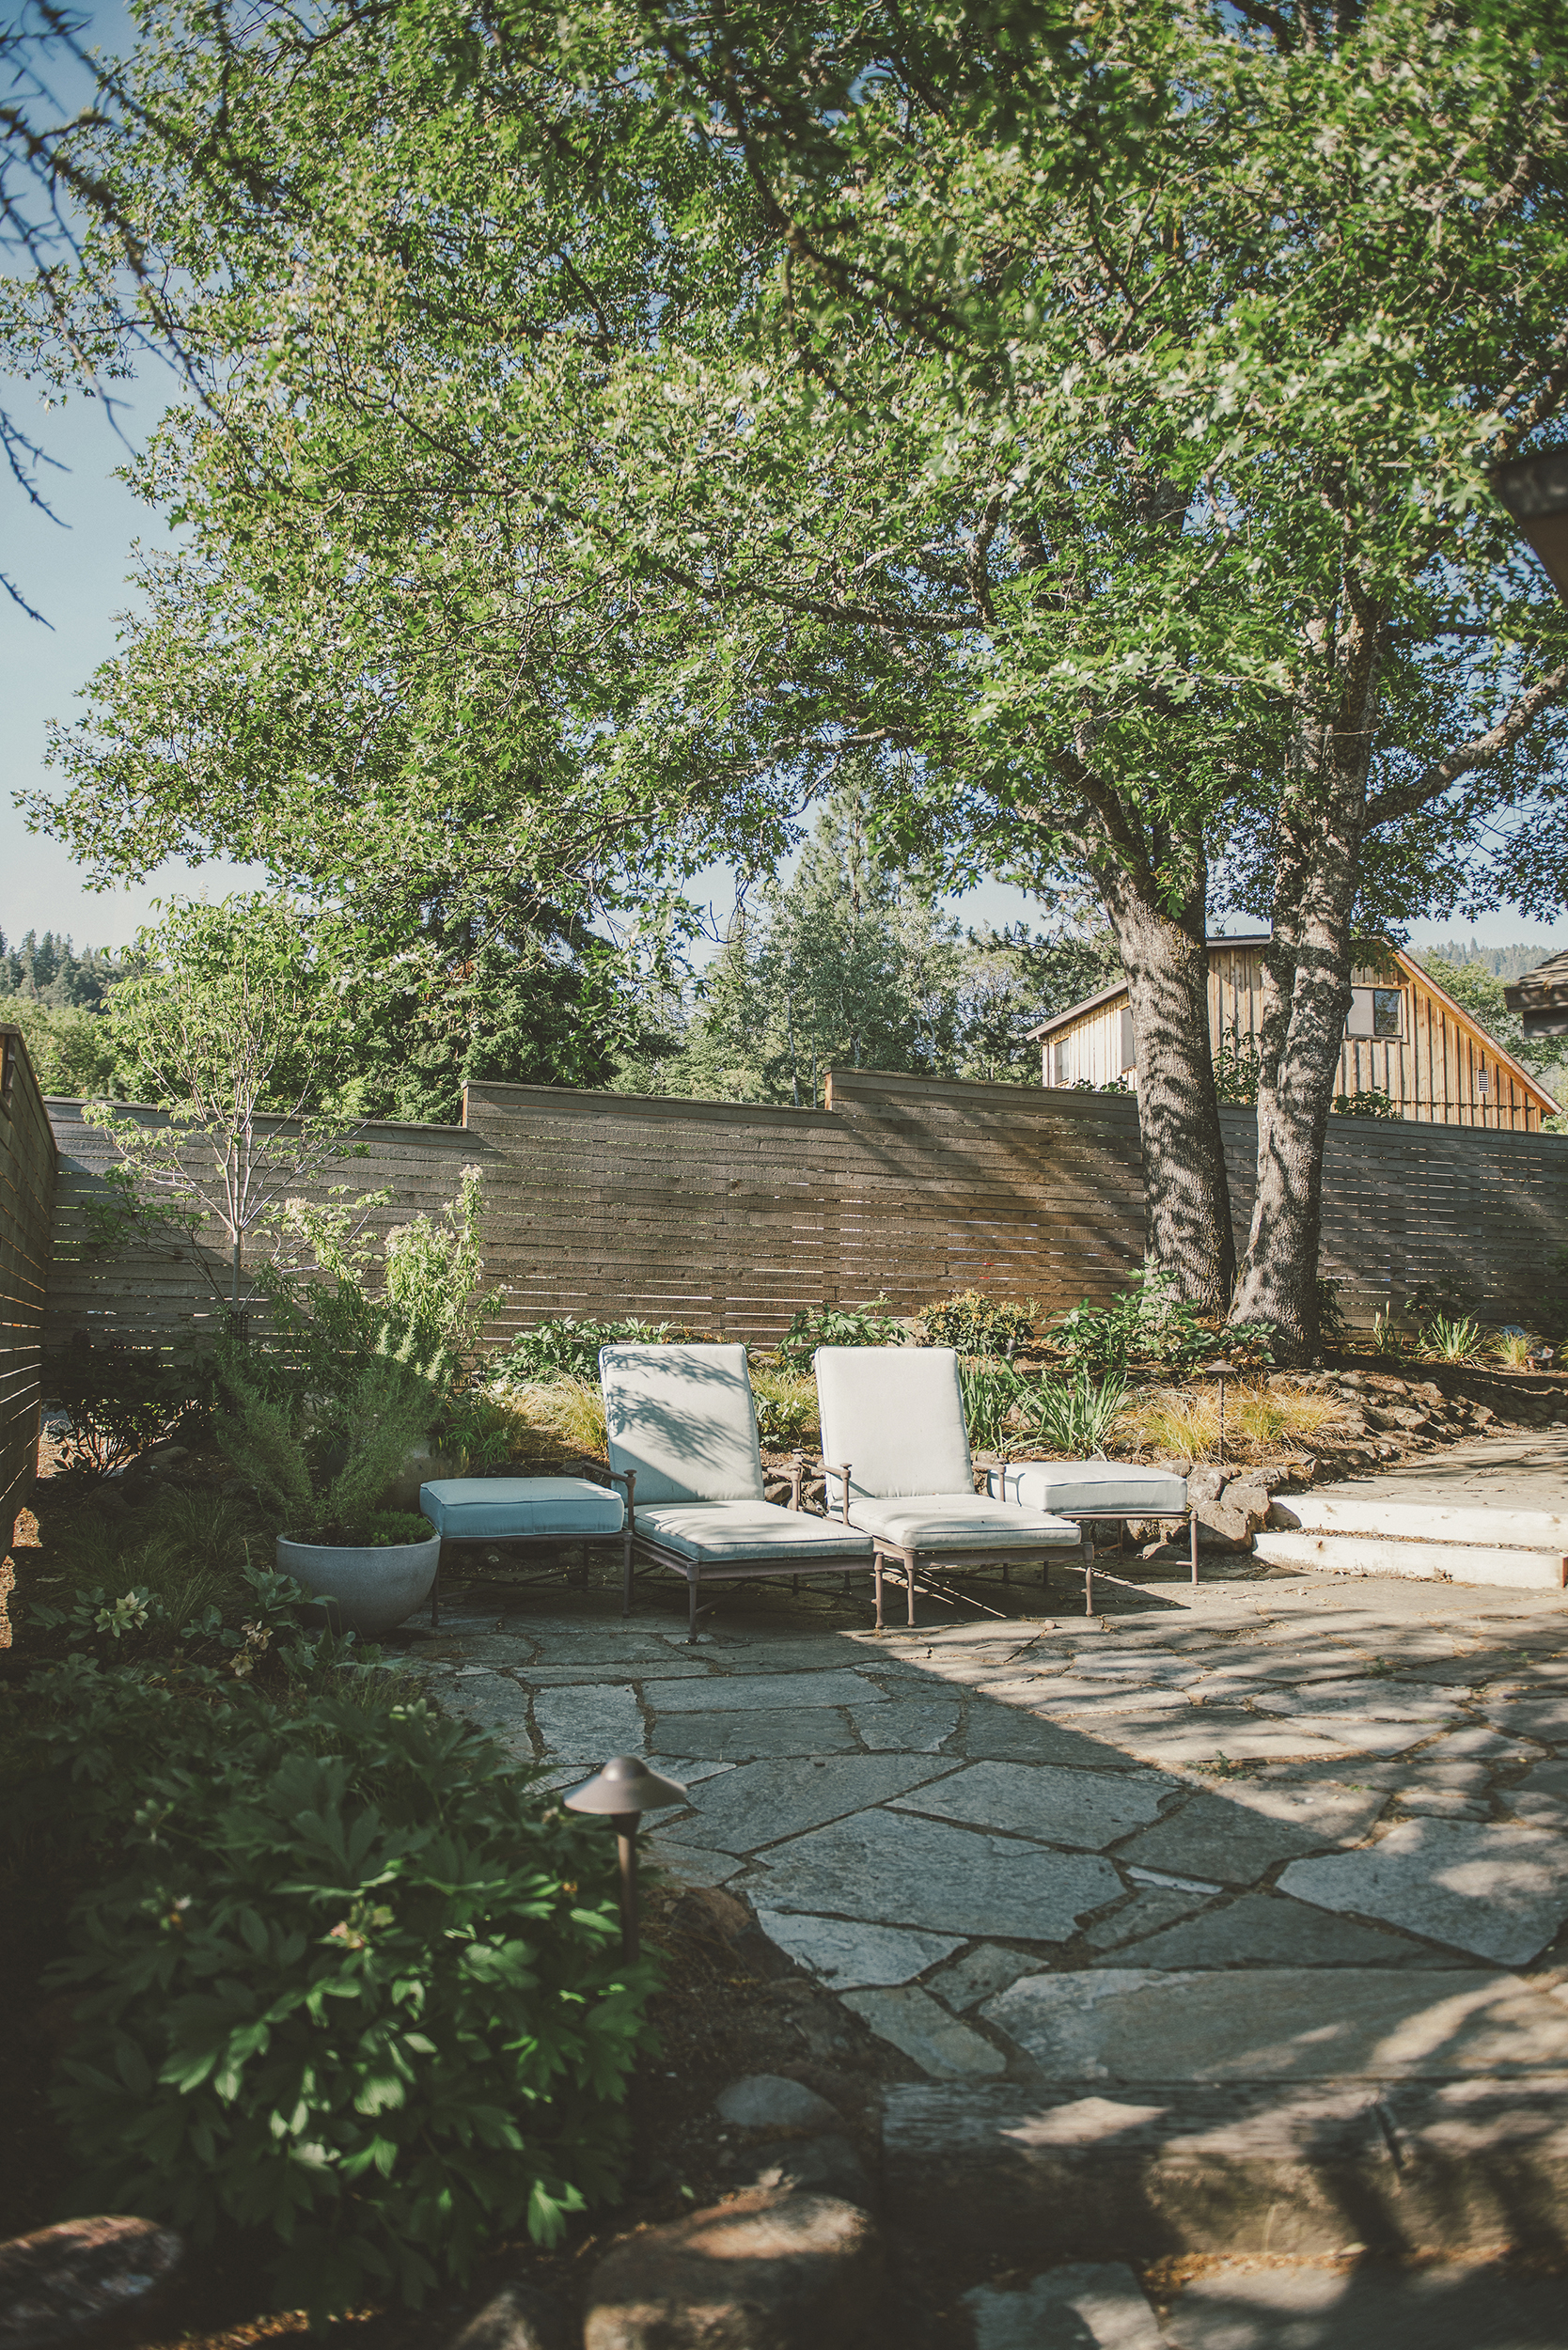 Flagstone Patio + Lounge Outdoor Furniture + Wood Panel Fence + Modern Native Plantings.jpg